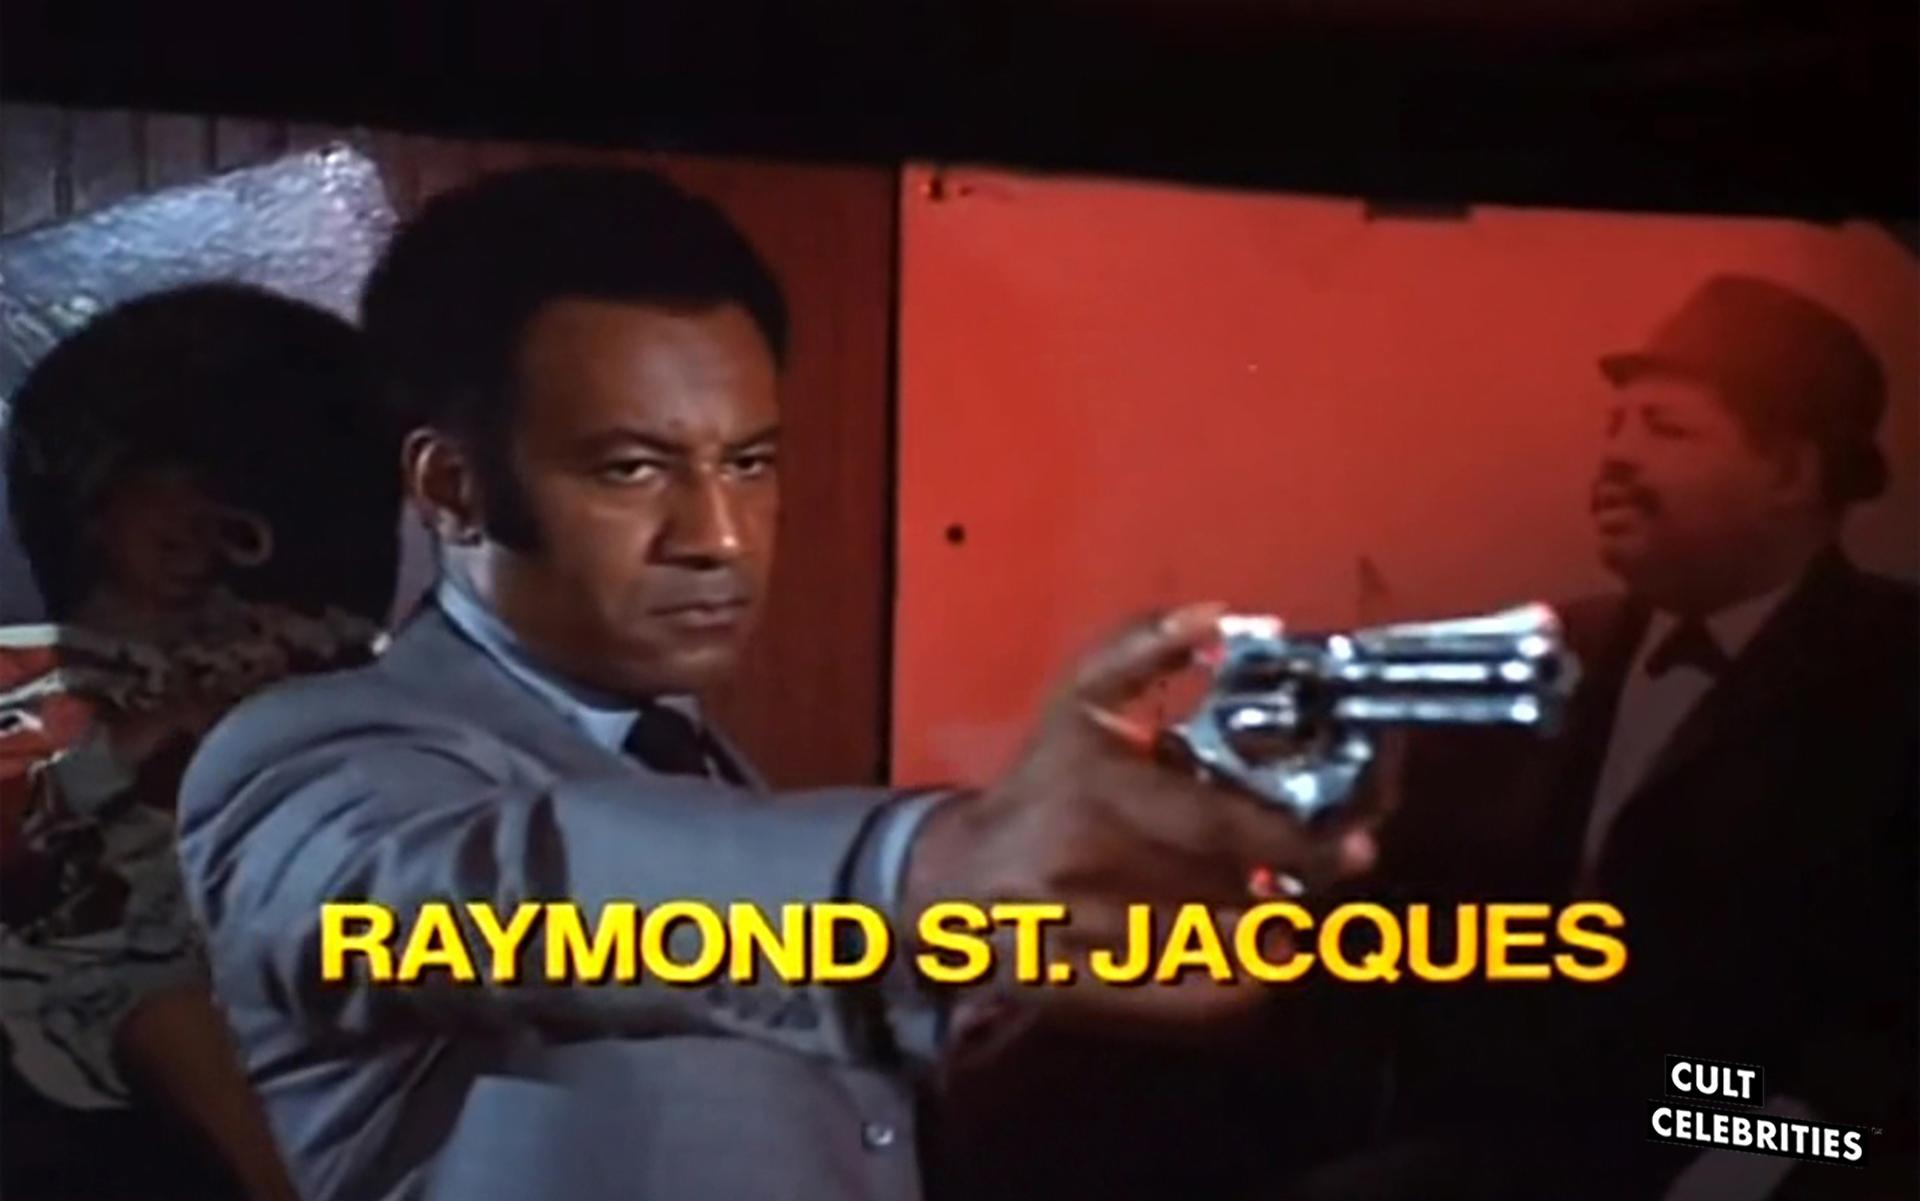 Raymond St. Jacques in Cotton Comes To Harlem (1970)